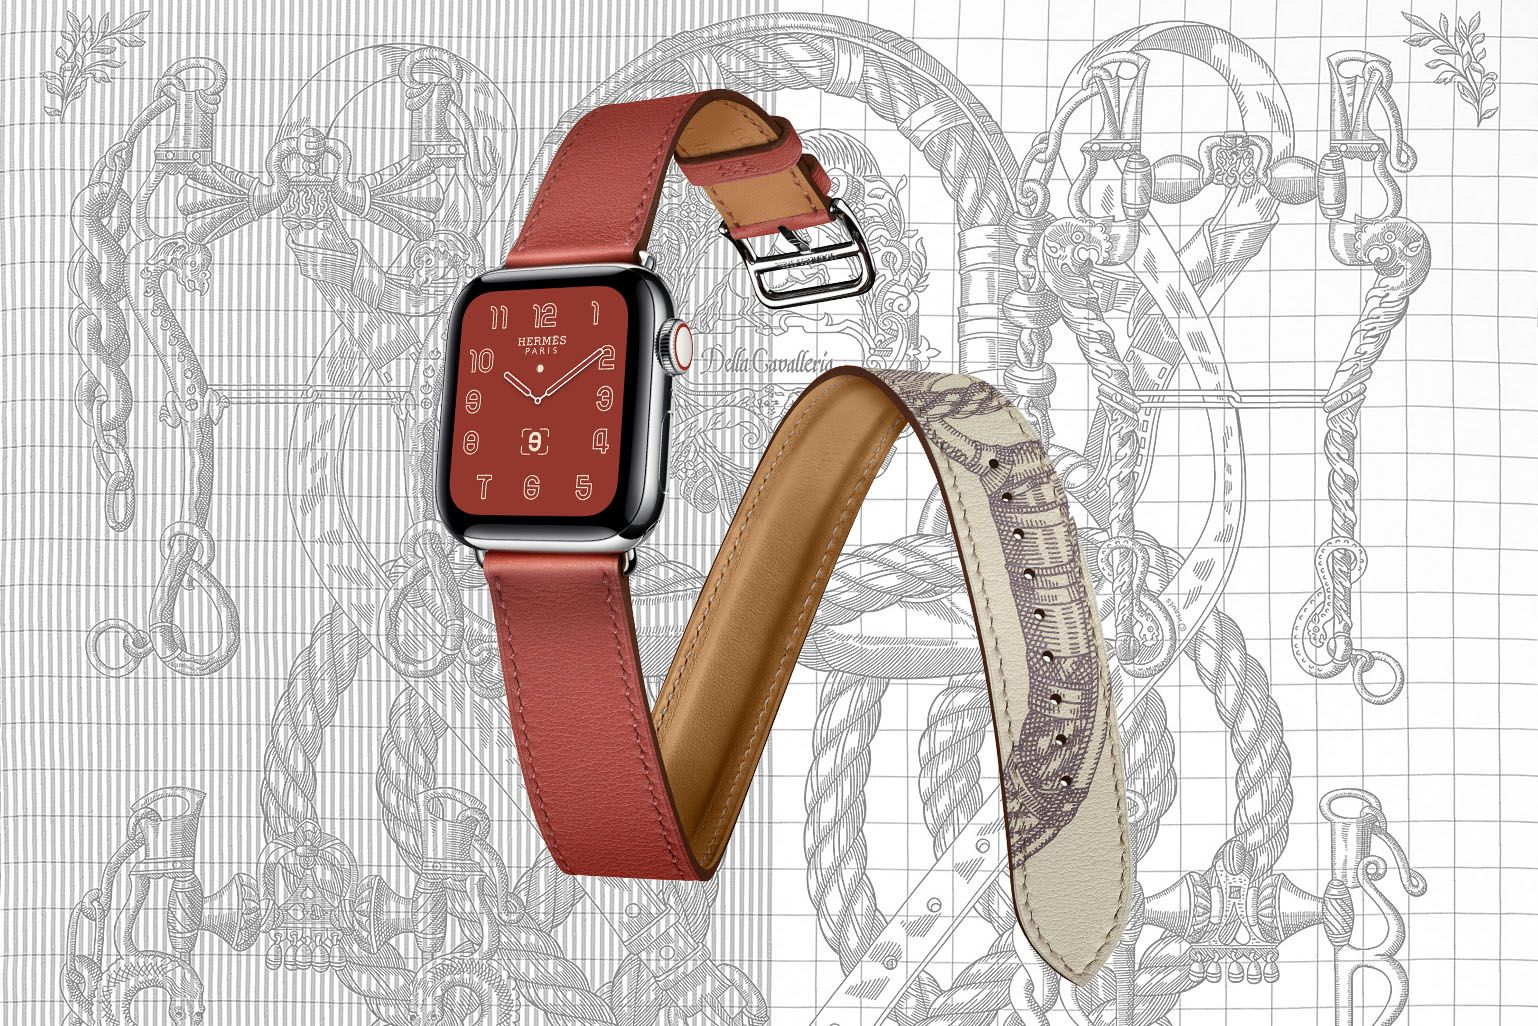 The New Apple Watch Hermès Series 5 Features An Eye-Catching Scarf Design On Its Strap